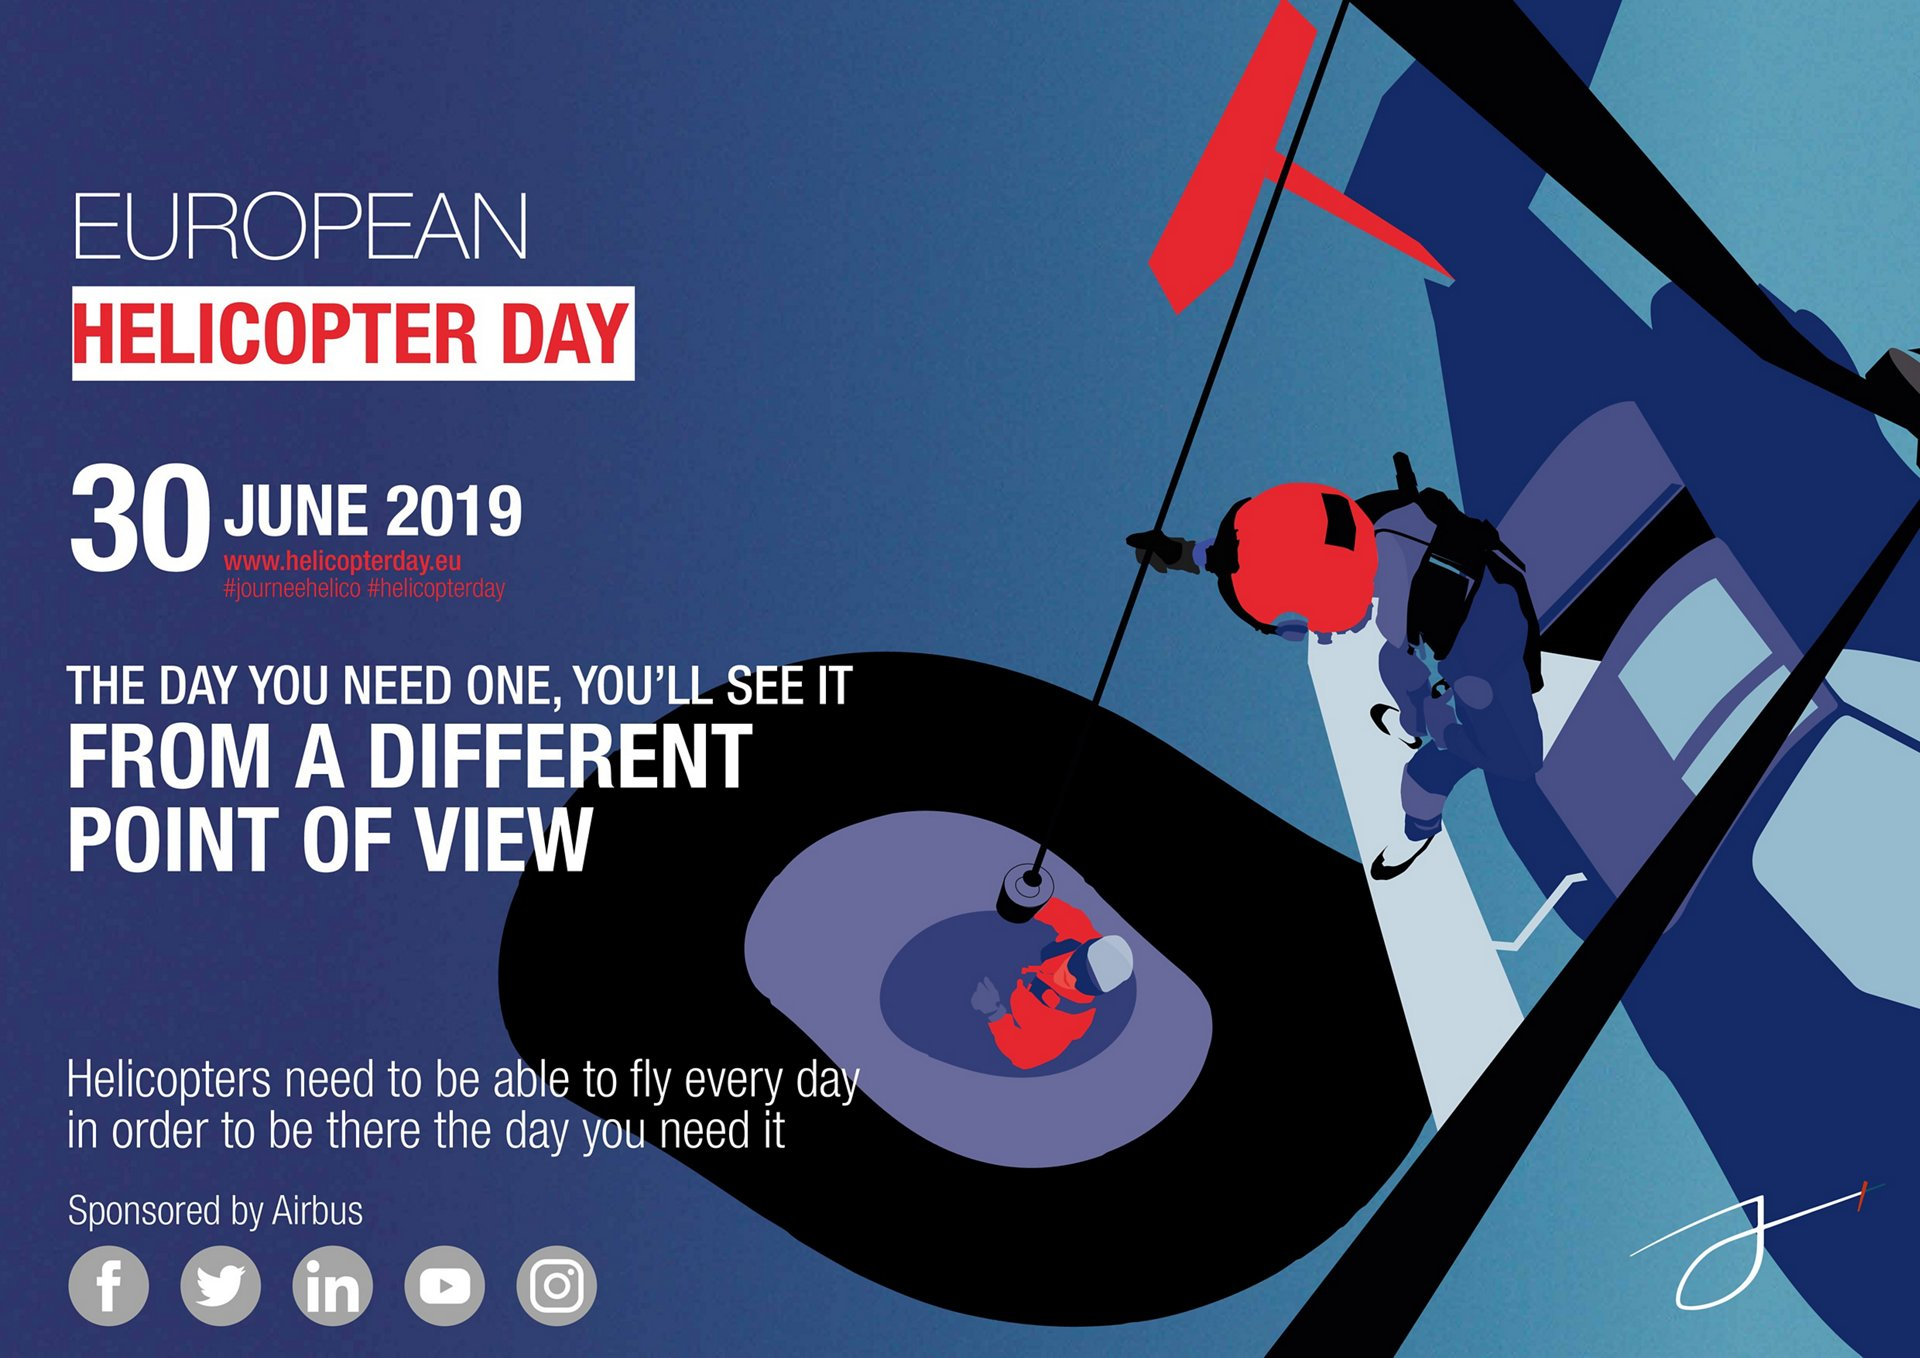 Celebrating the past, present and future of rotorcraft on European Helicopter Day